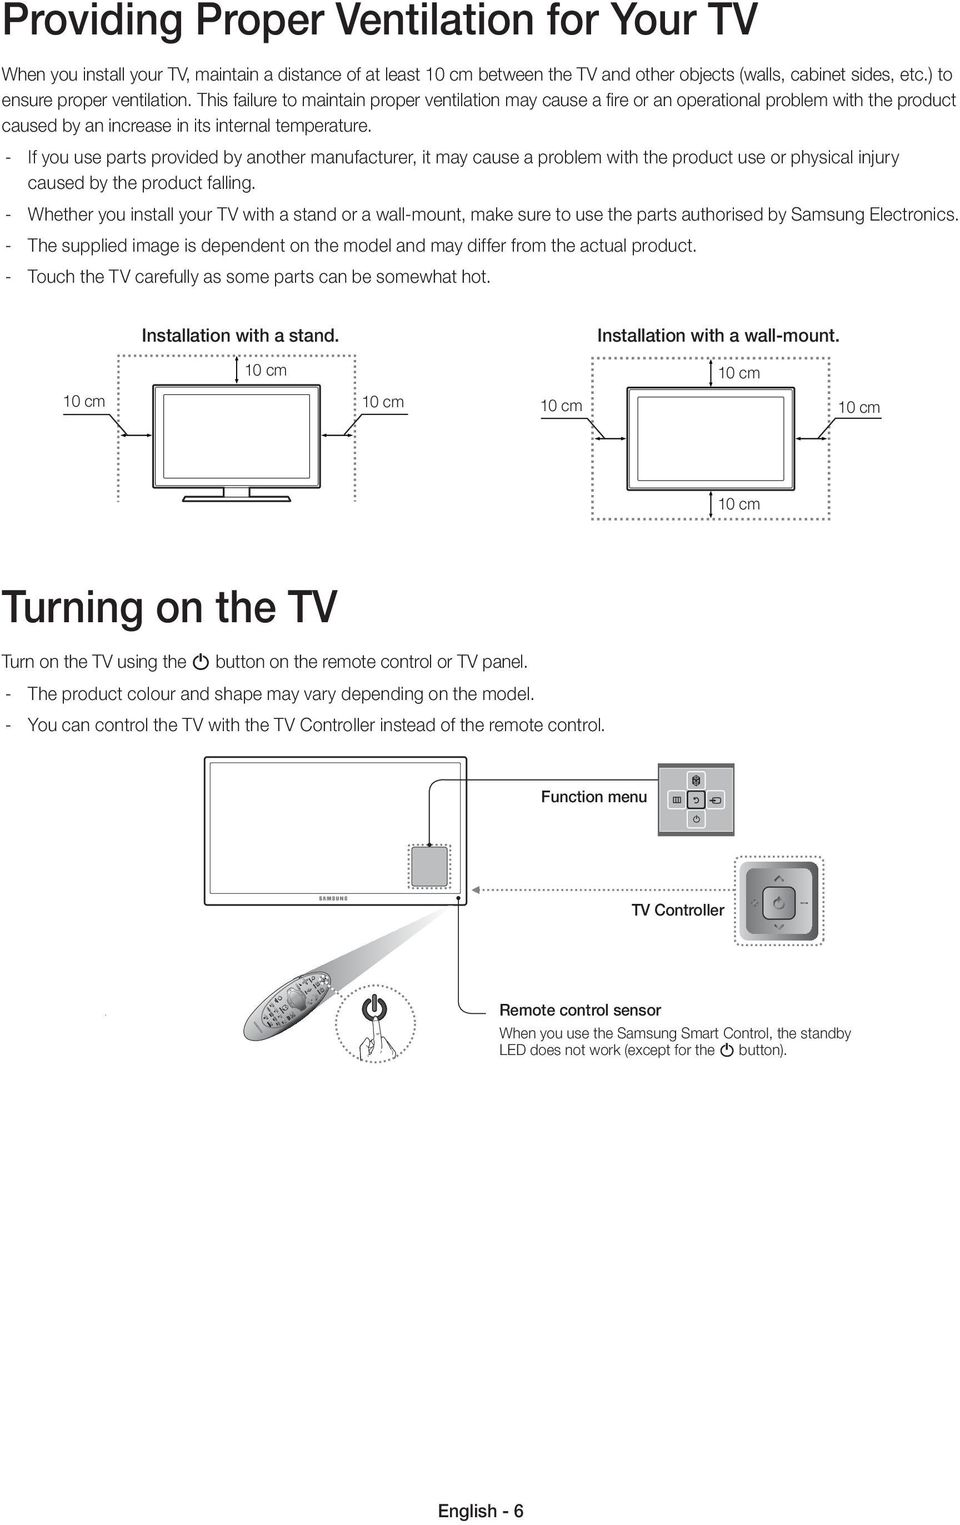 Before Operating Your Samsung Tv Please Read This User Manual Led X 2100 Wiring Diagram If You Use Parts Provided By Another Manufacturer It May Cause A Problem With The